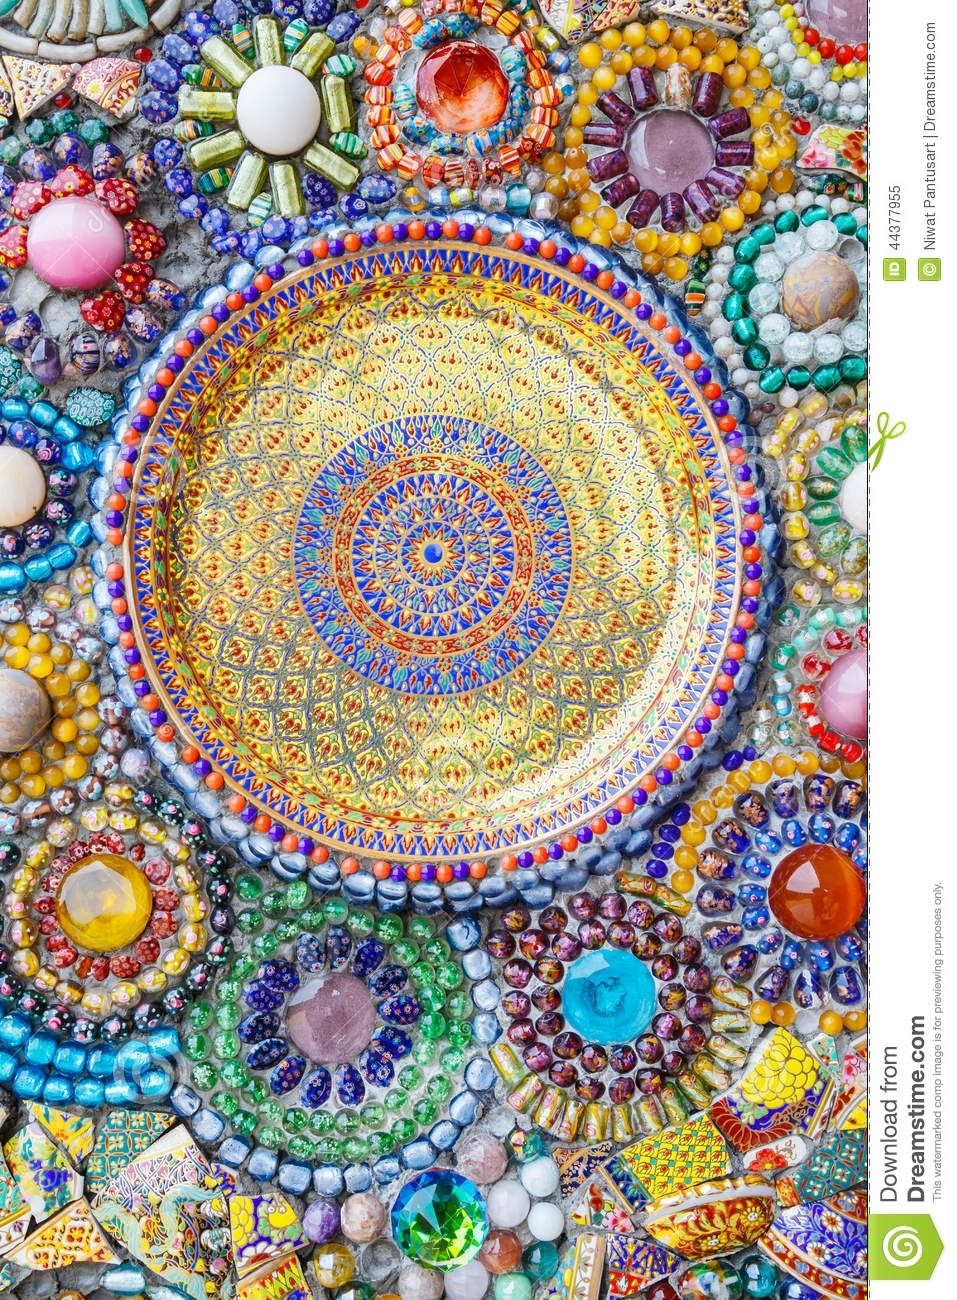 Colorful Mosaic Art Abstract Wall Background Stock Image – Image Regarding 2018 Abstract Mosaic Wall Art (View 9 of 20)